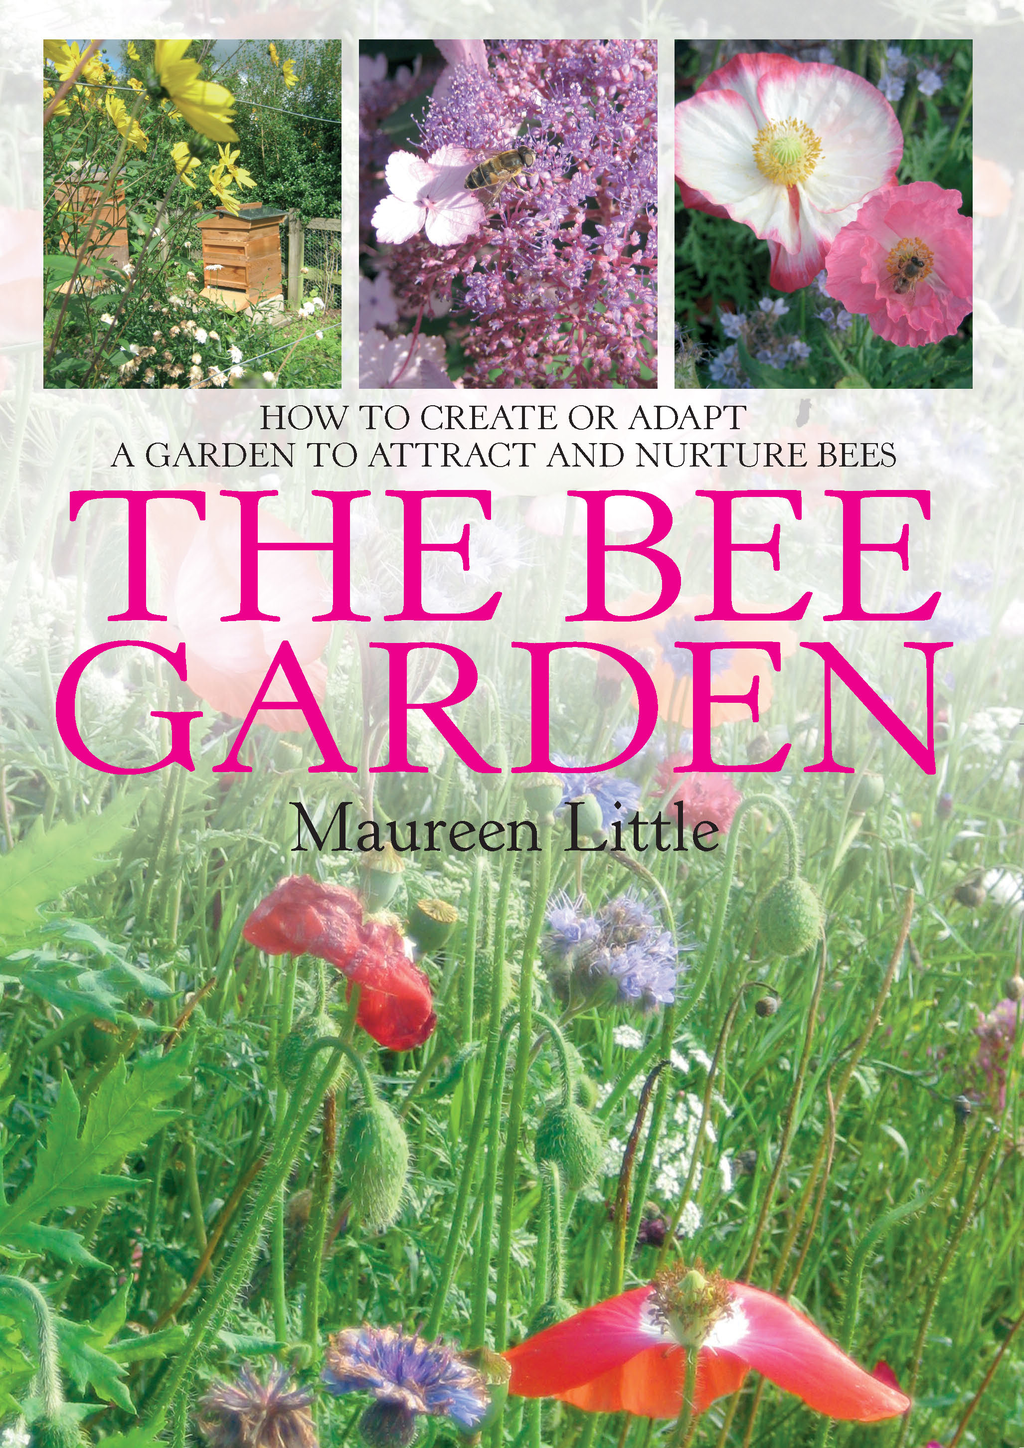 The Bee Garden How to create or adapt a garden to attract and nurture bees